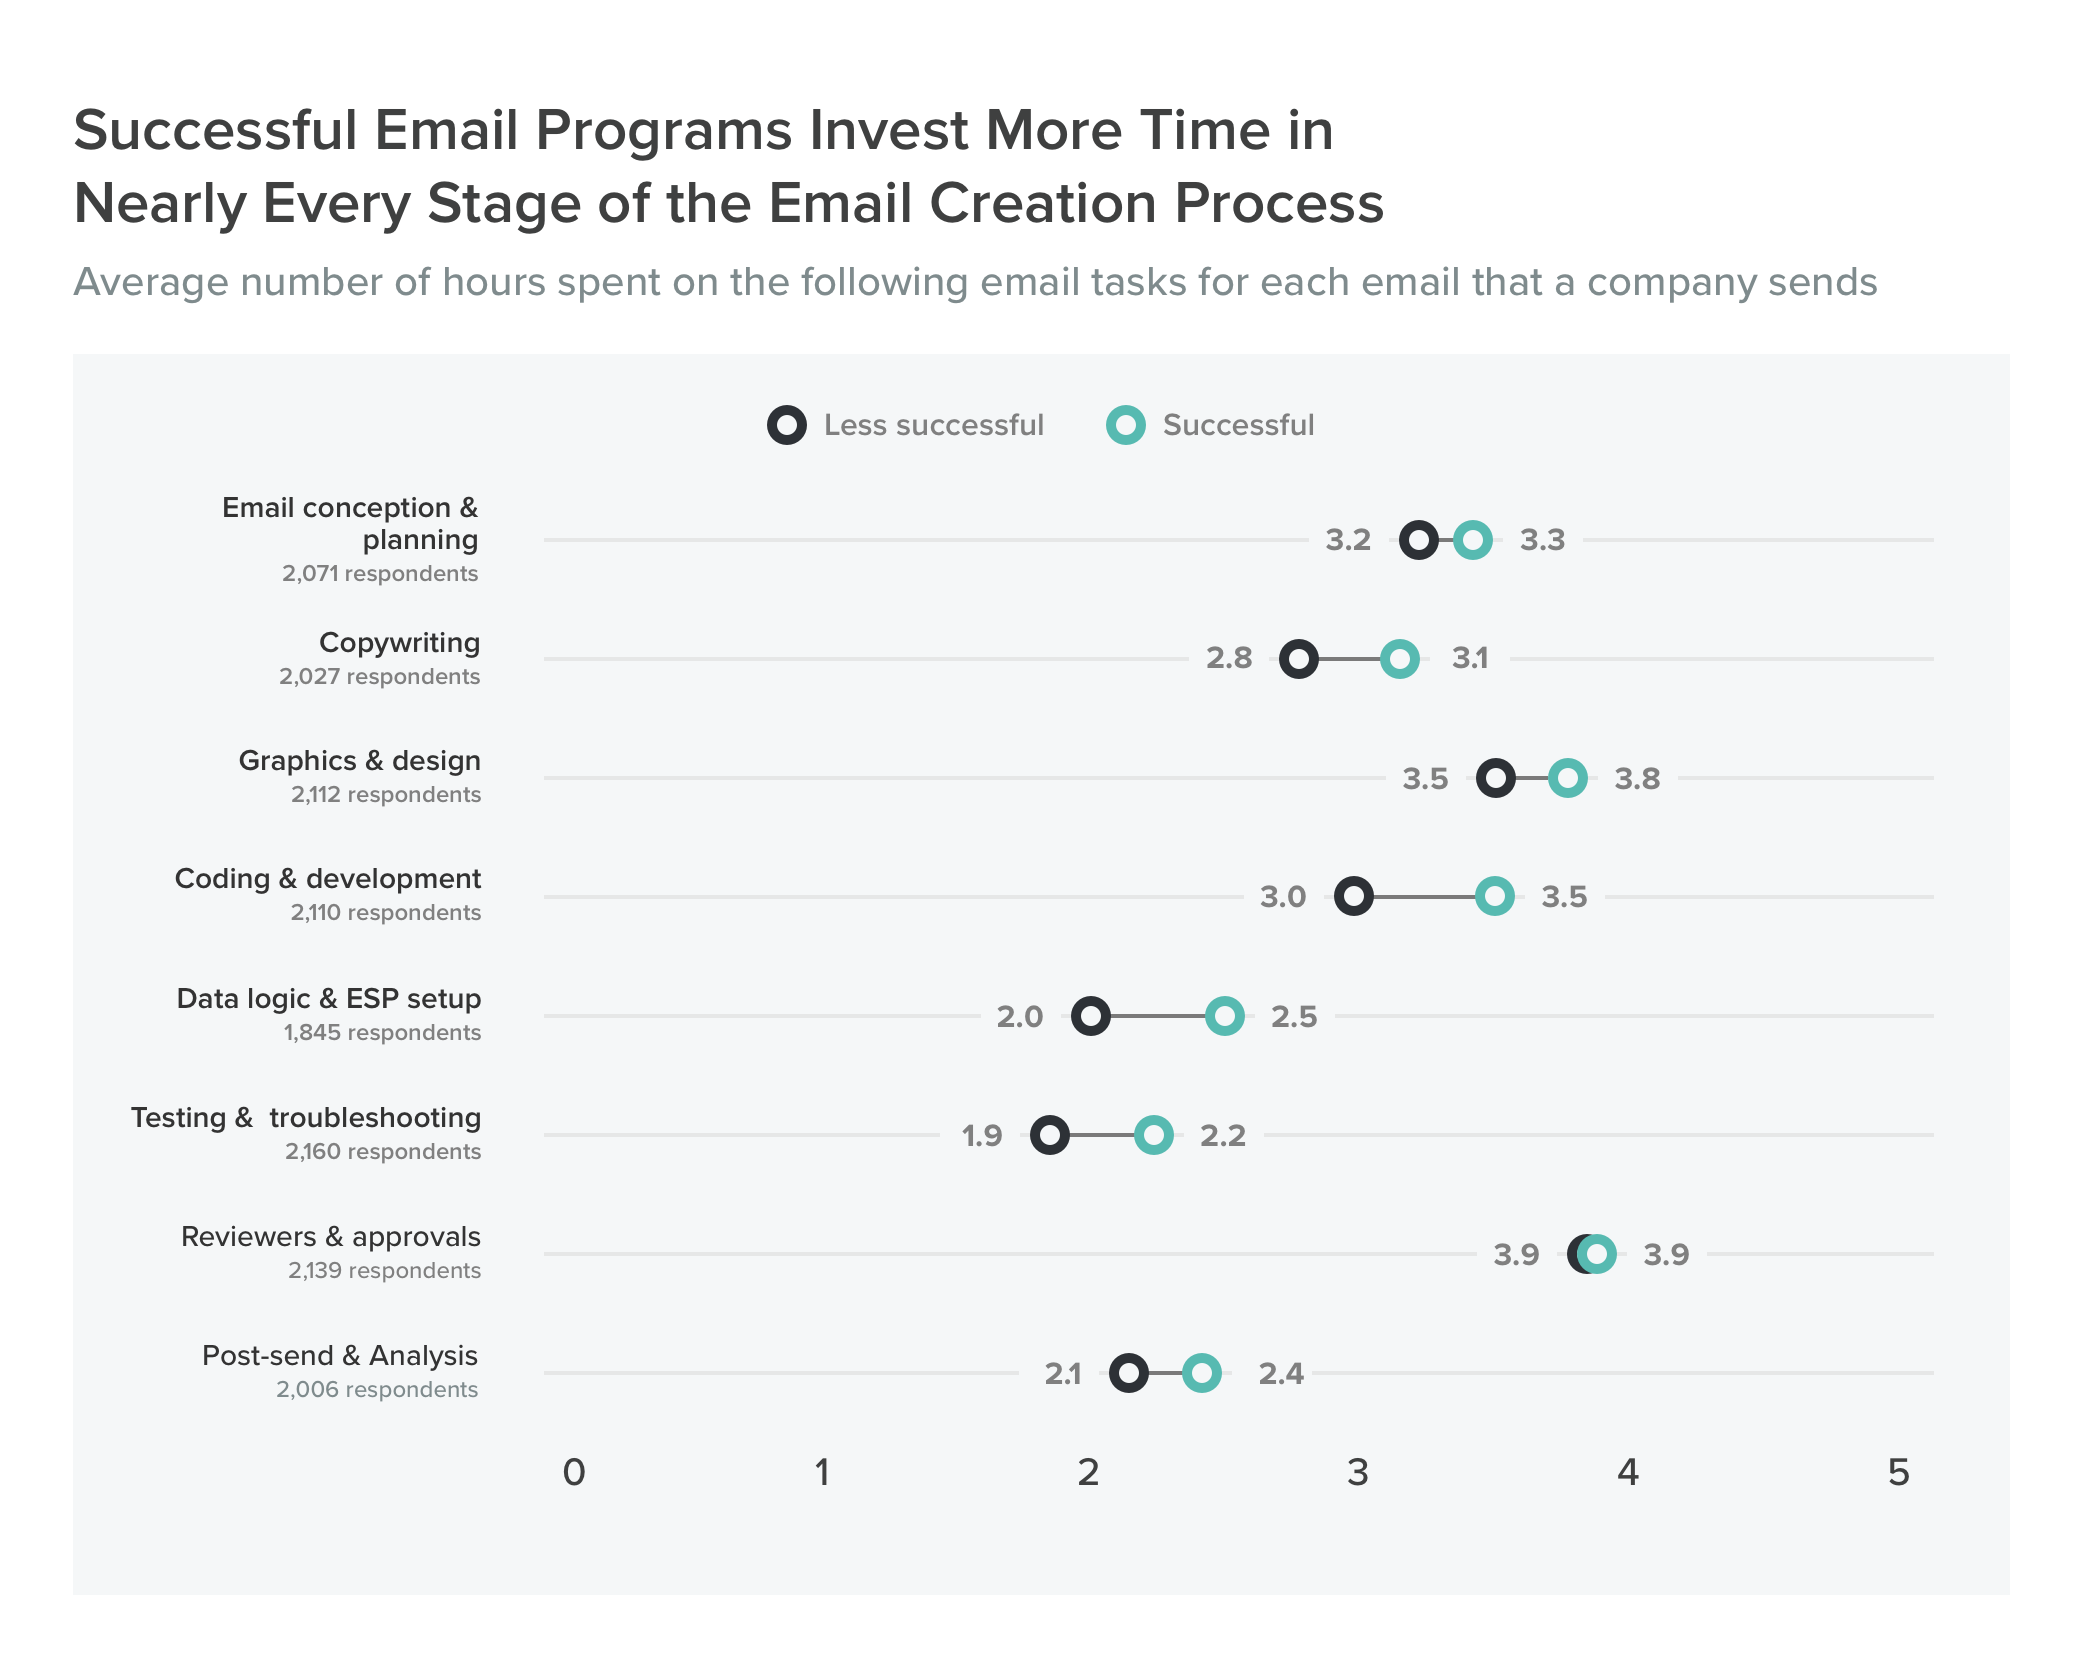 Successful Email Programs Invest More Time in Nearly Every Stage of the Email Creation Process